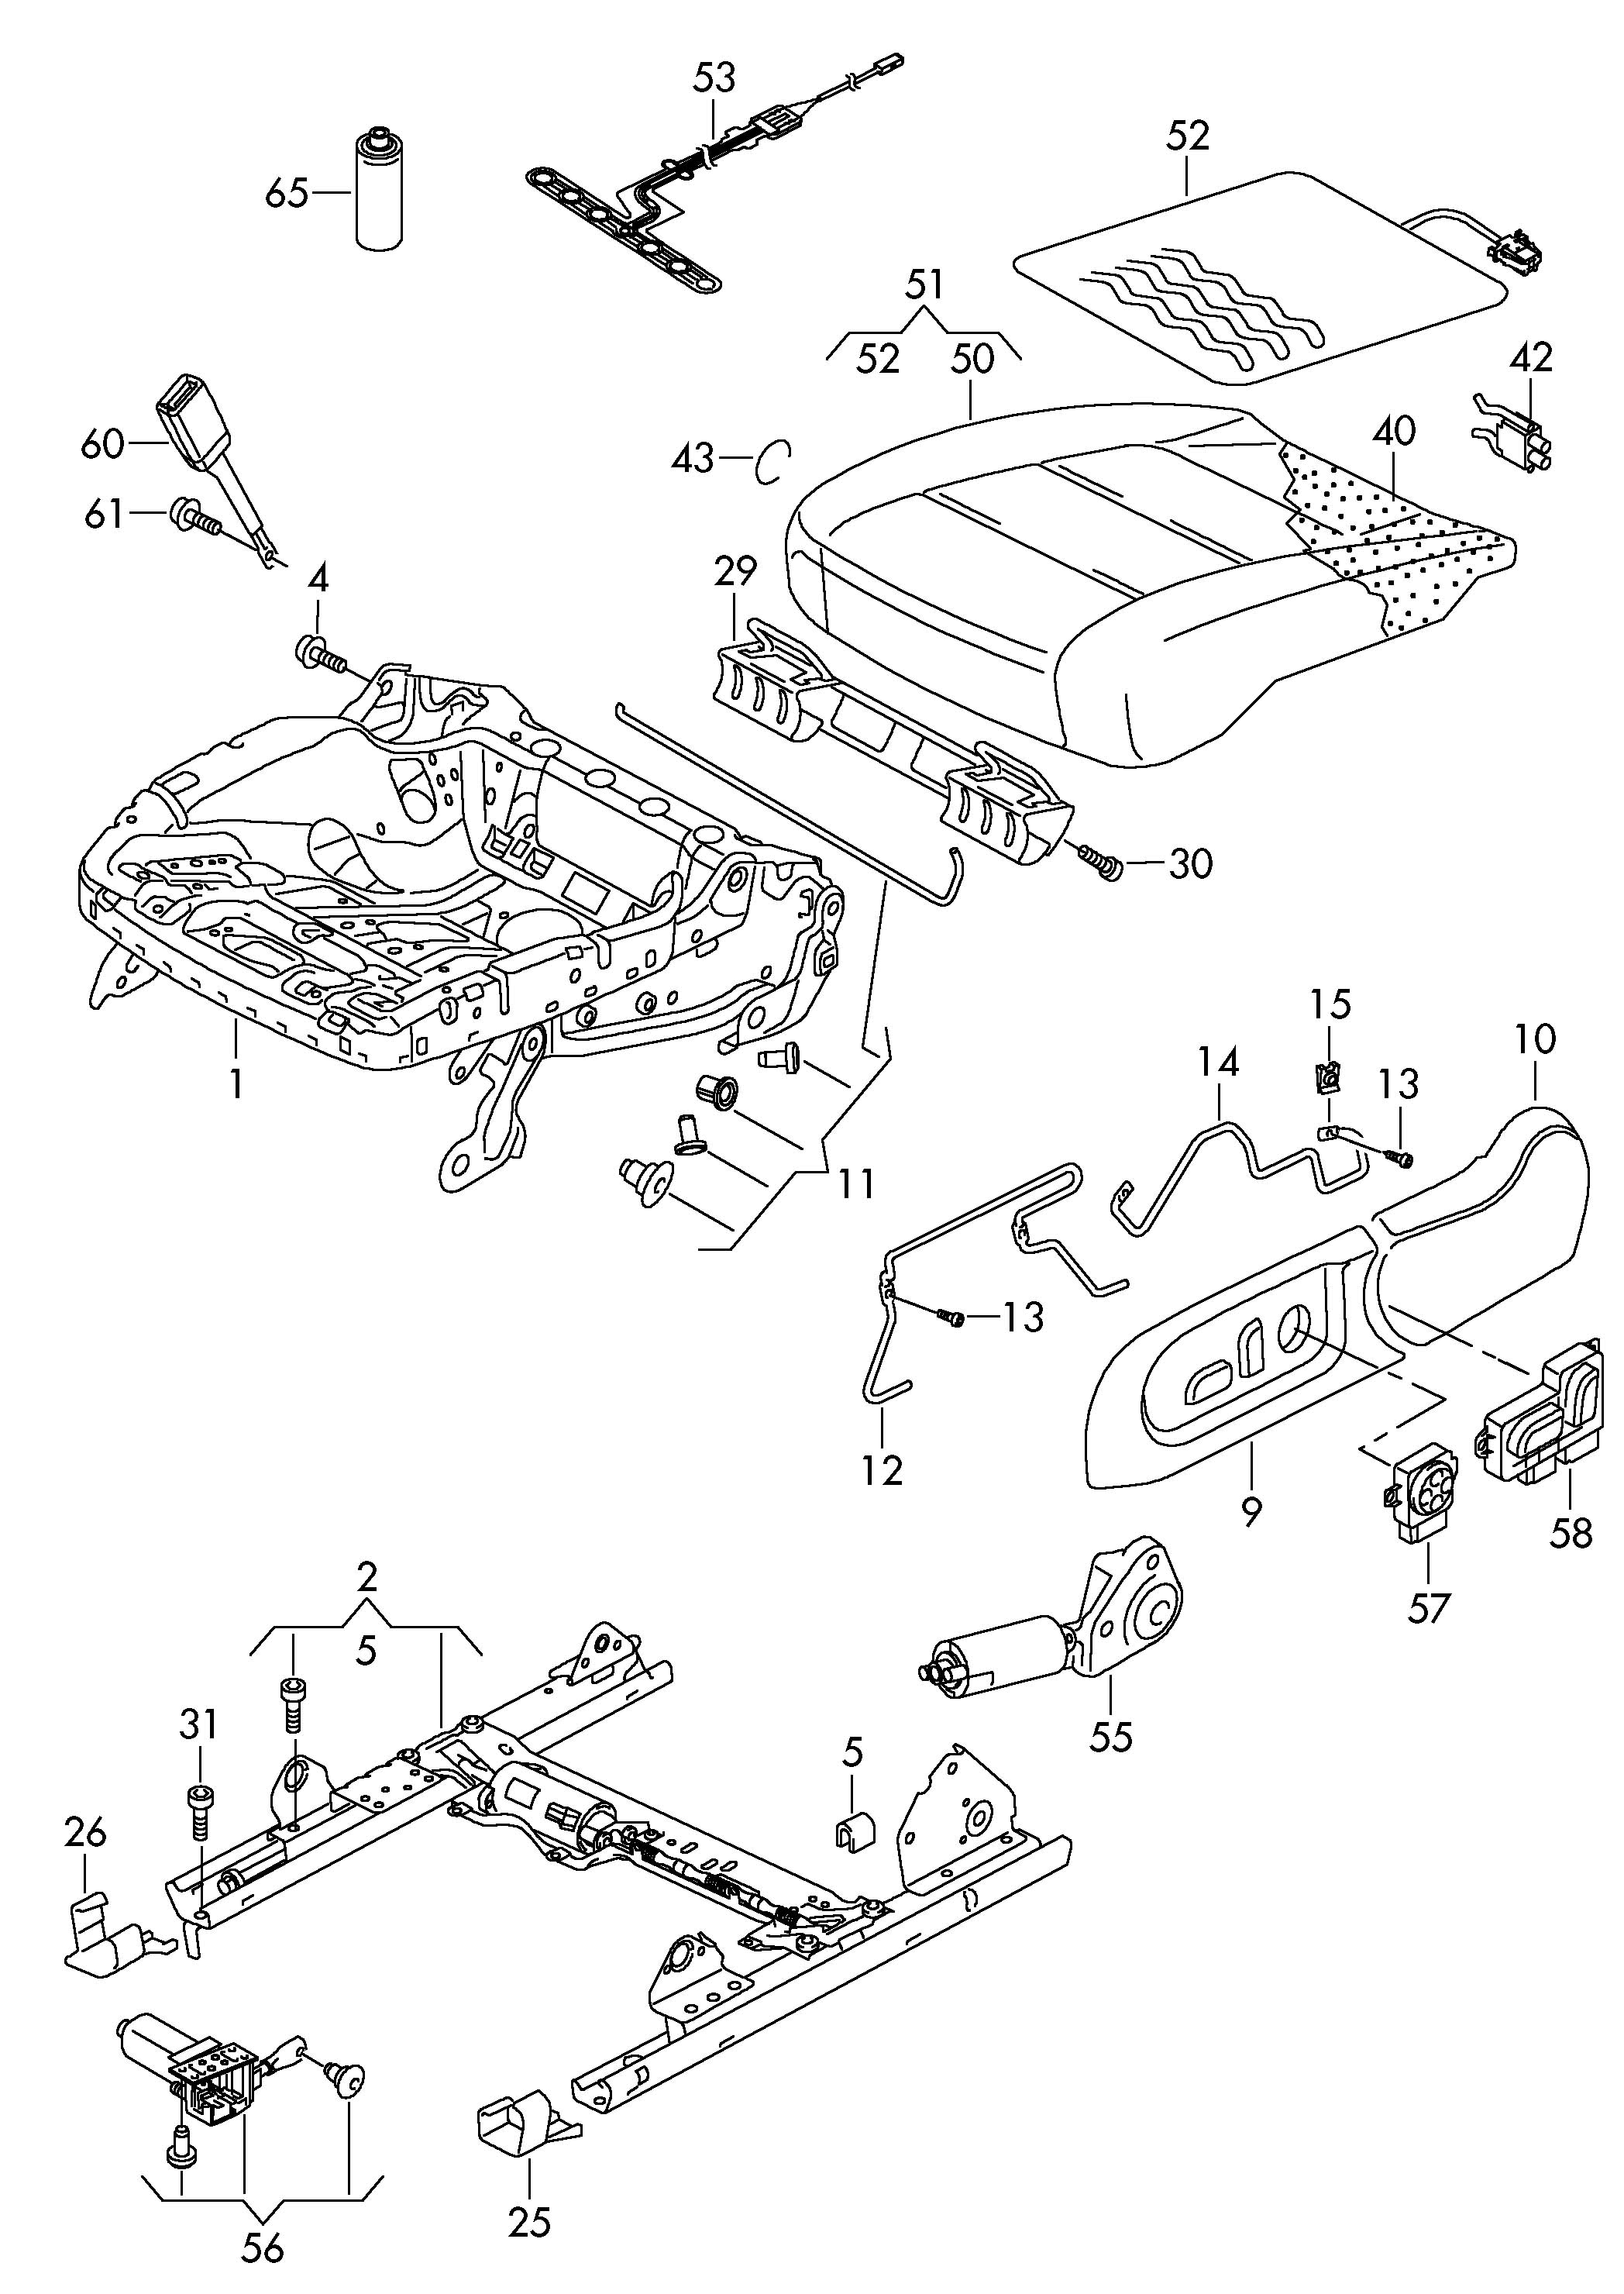 vw eos parts diagram sony cdx r3000 wiring new transmission 2002 gti and fuse box